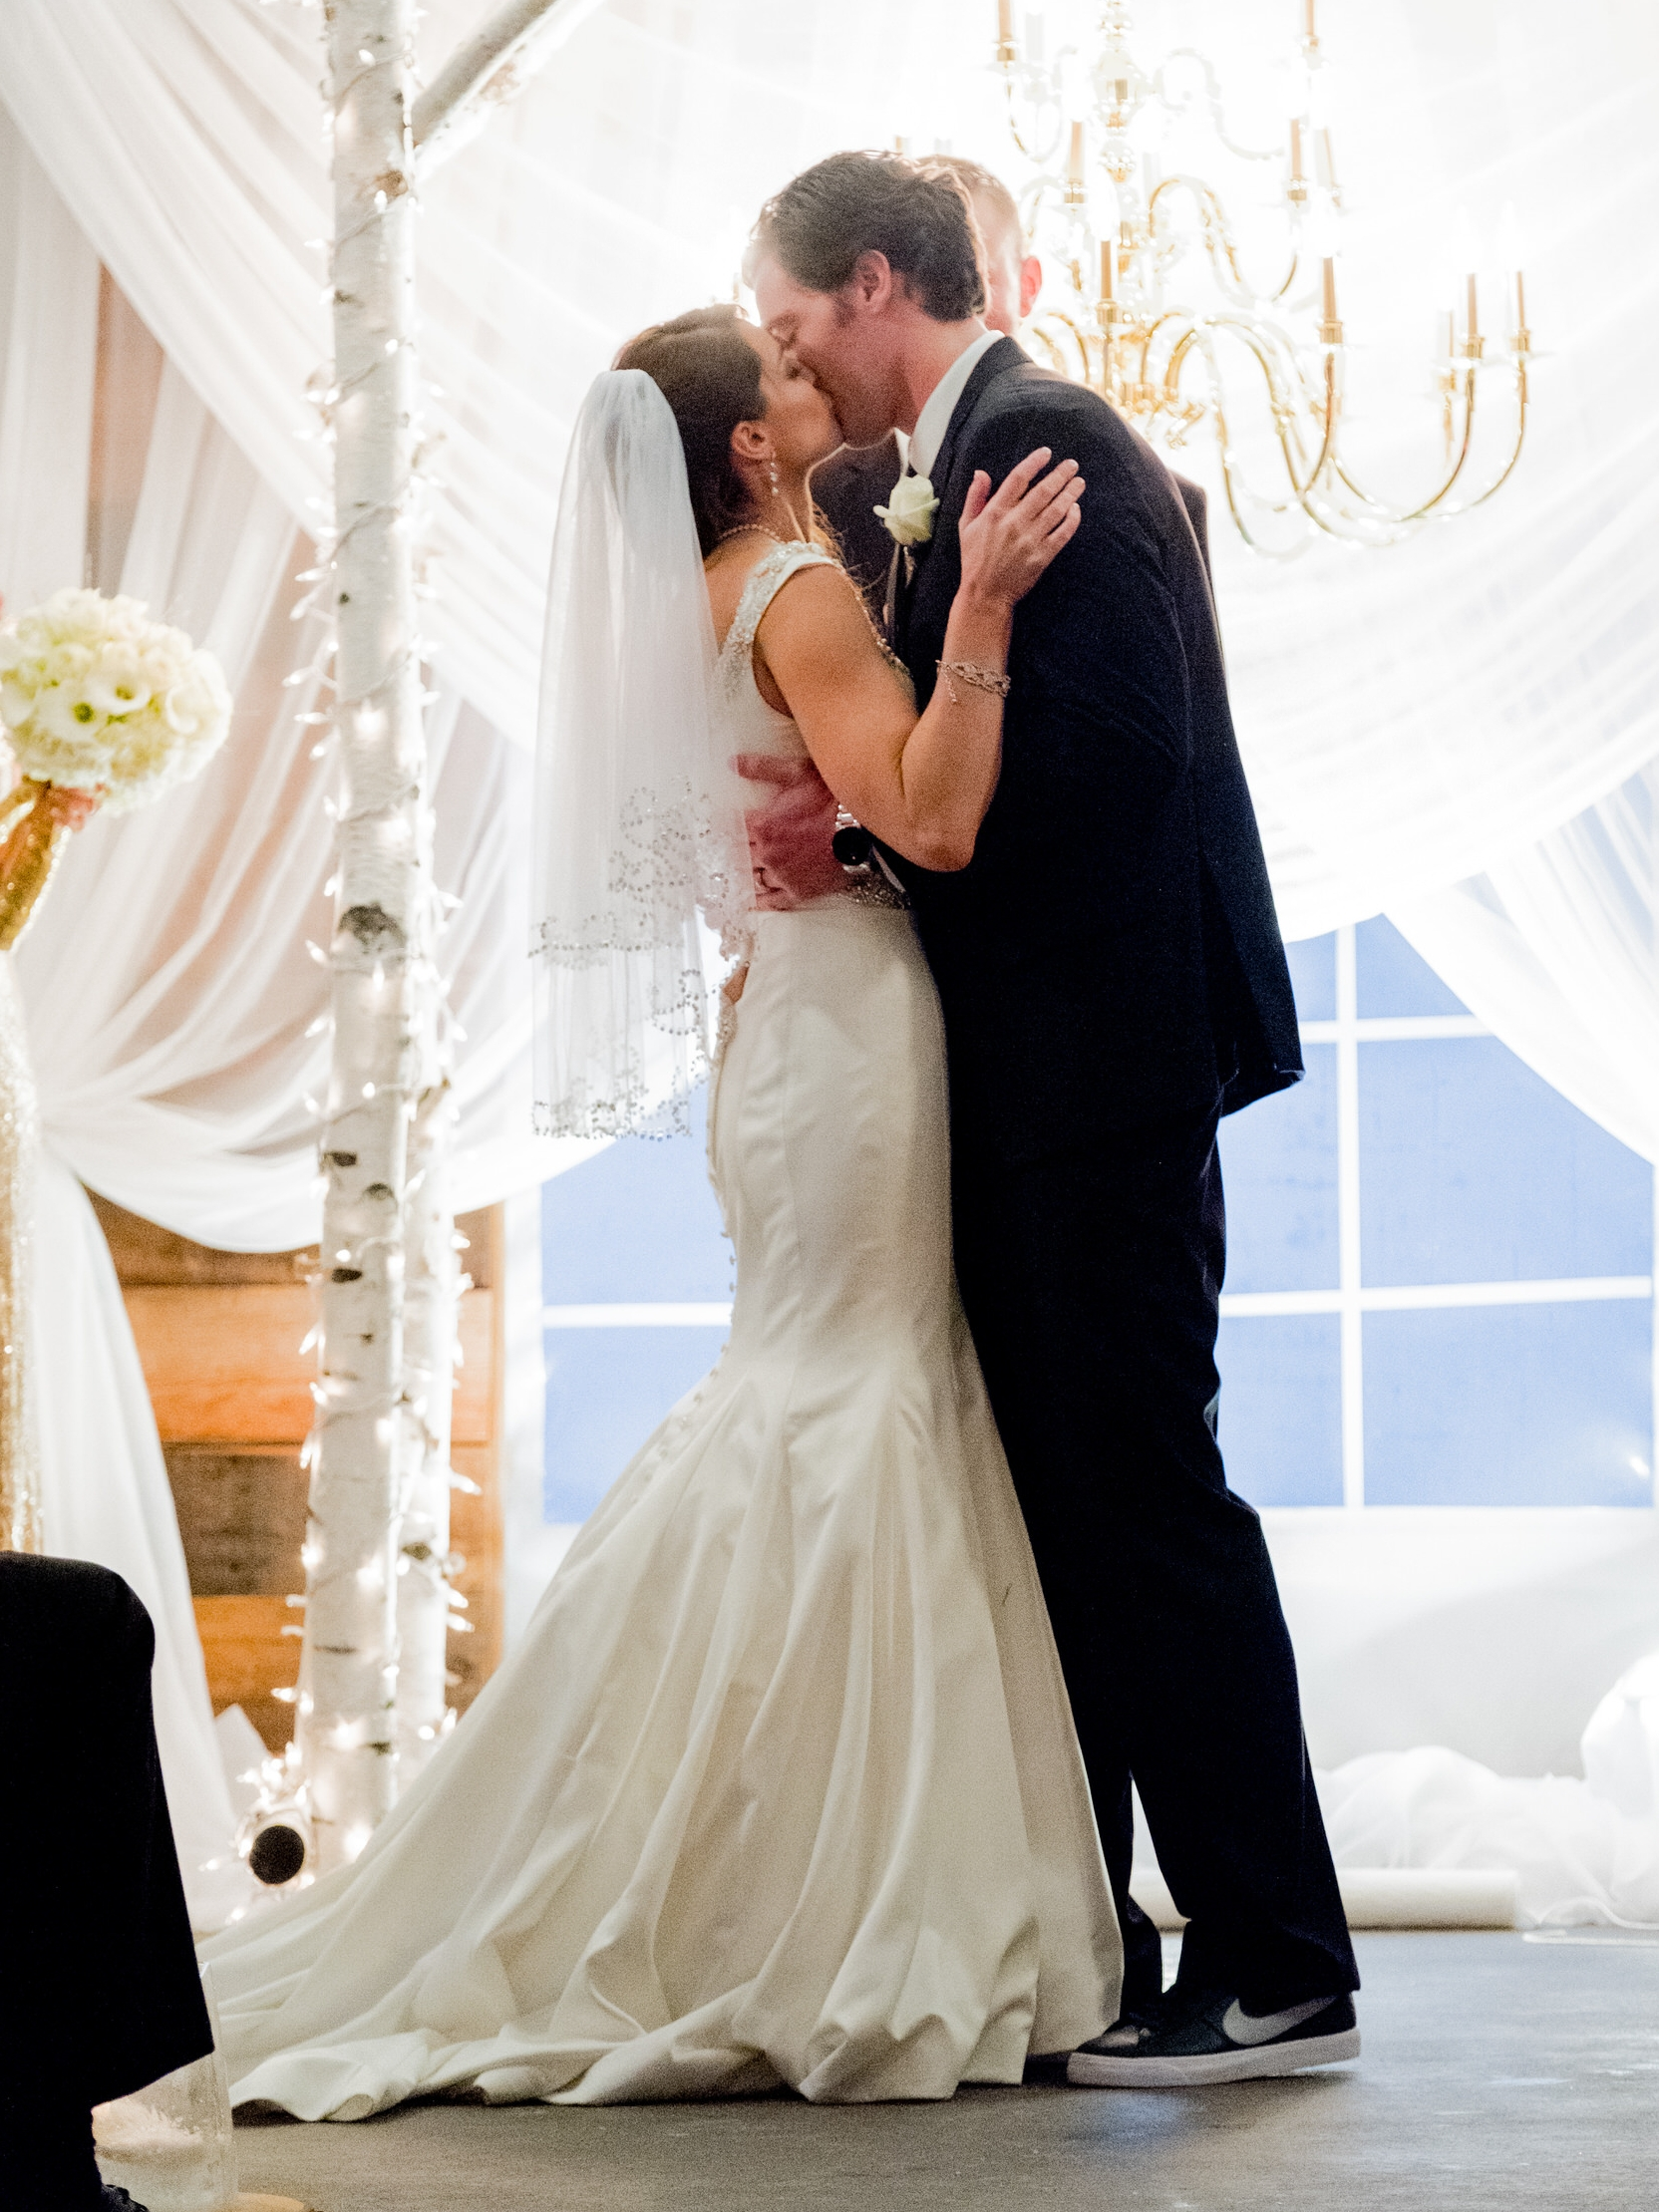 bride and groom kiss ar ceremony in crosslake, mn